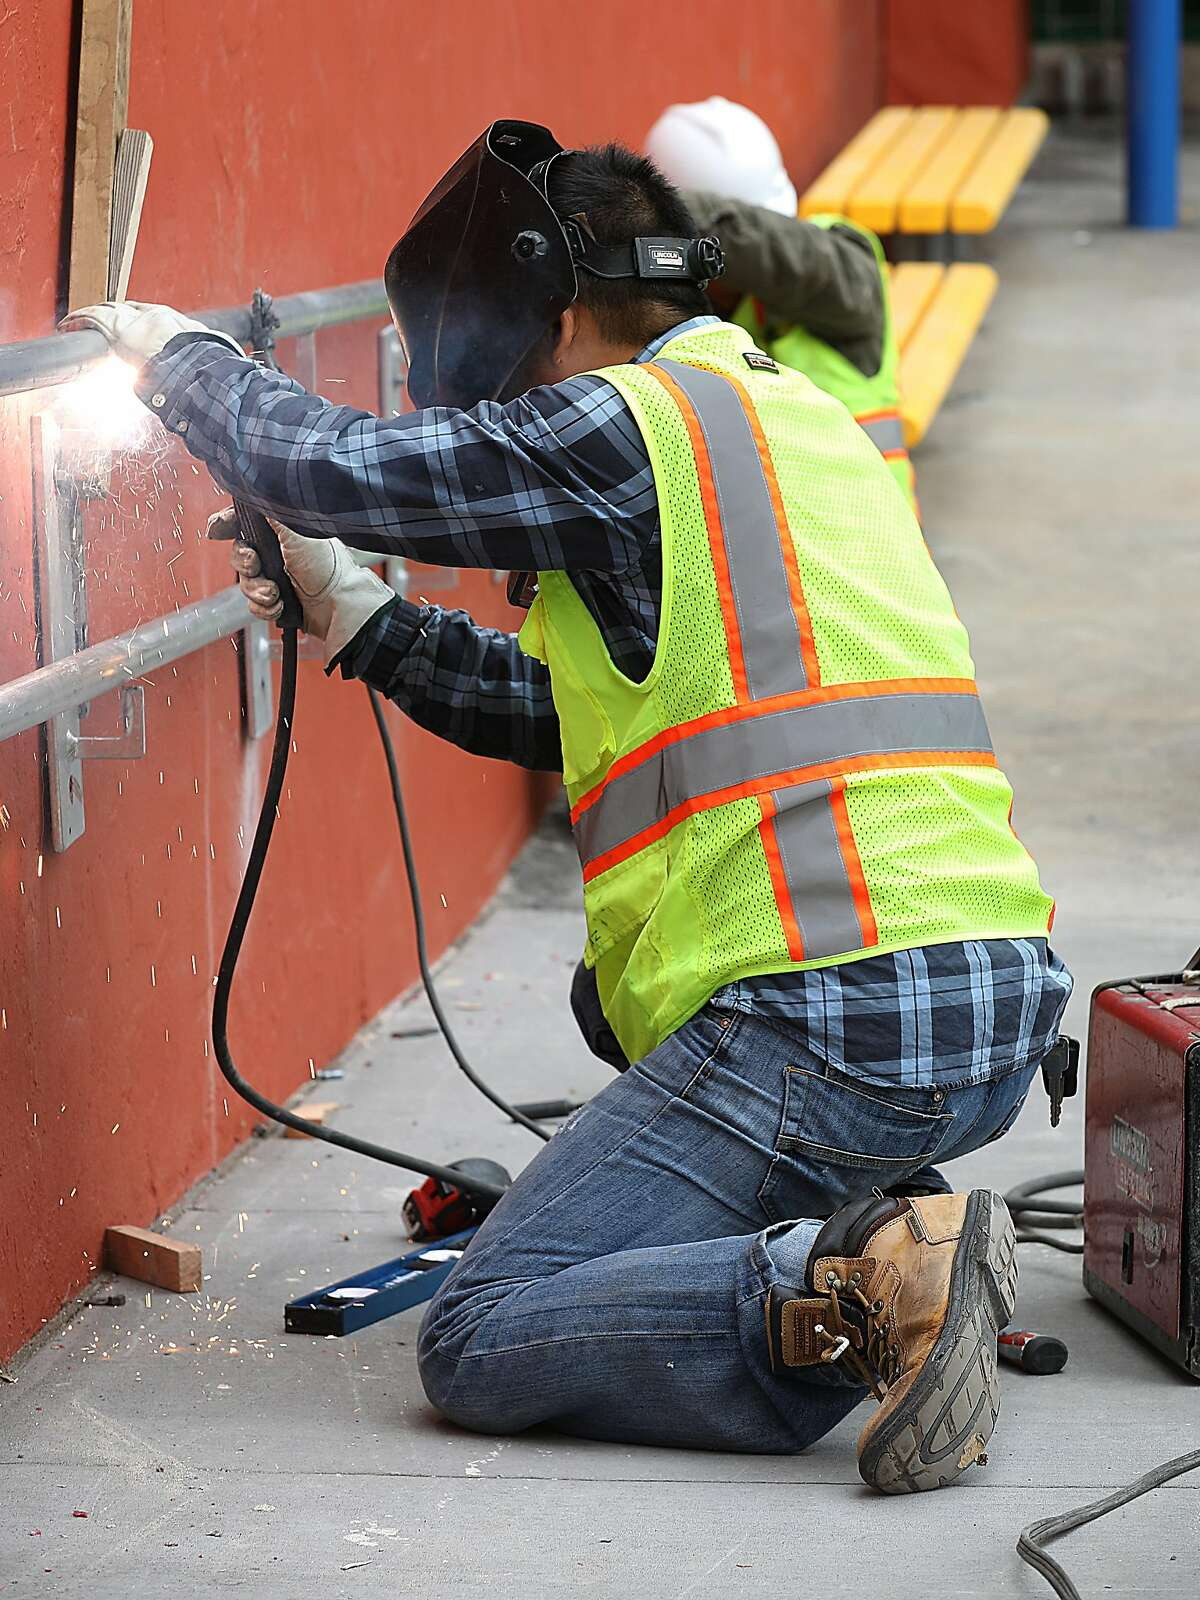 A hand rail is weld in the school yard at Redding Elementary school on Monday, Aug. 13, 2018 in San Francisco, Calif. The school has moved forward with construction and hopes to get reimbursed.